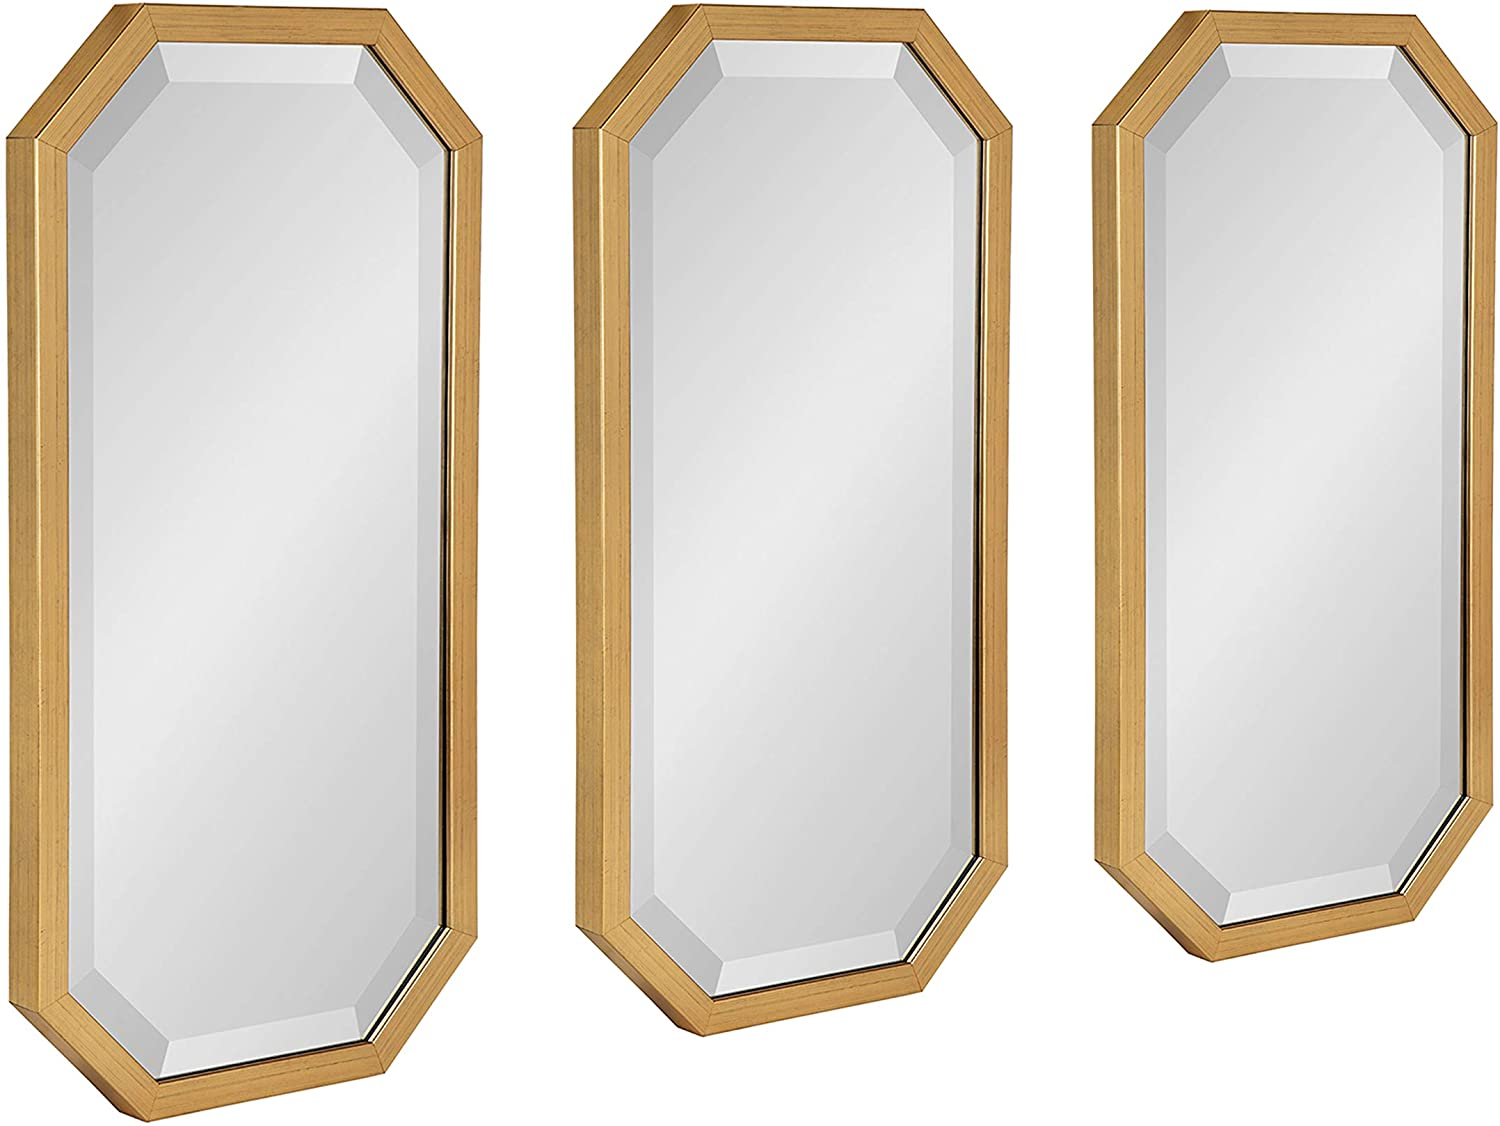 Kate and Laurel Laverty Modern Decorative Octagon Wall Mirror Se Finally free popular brand